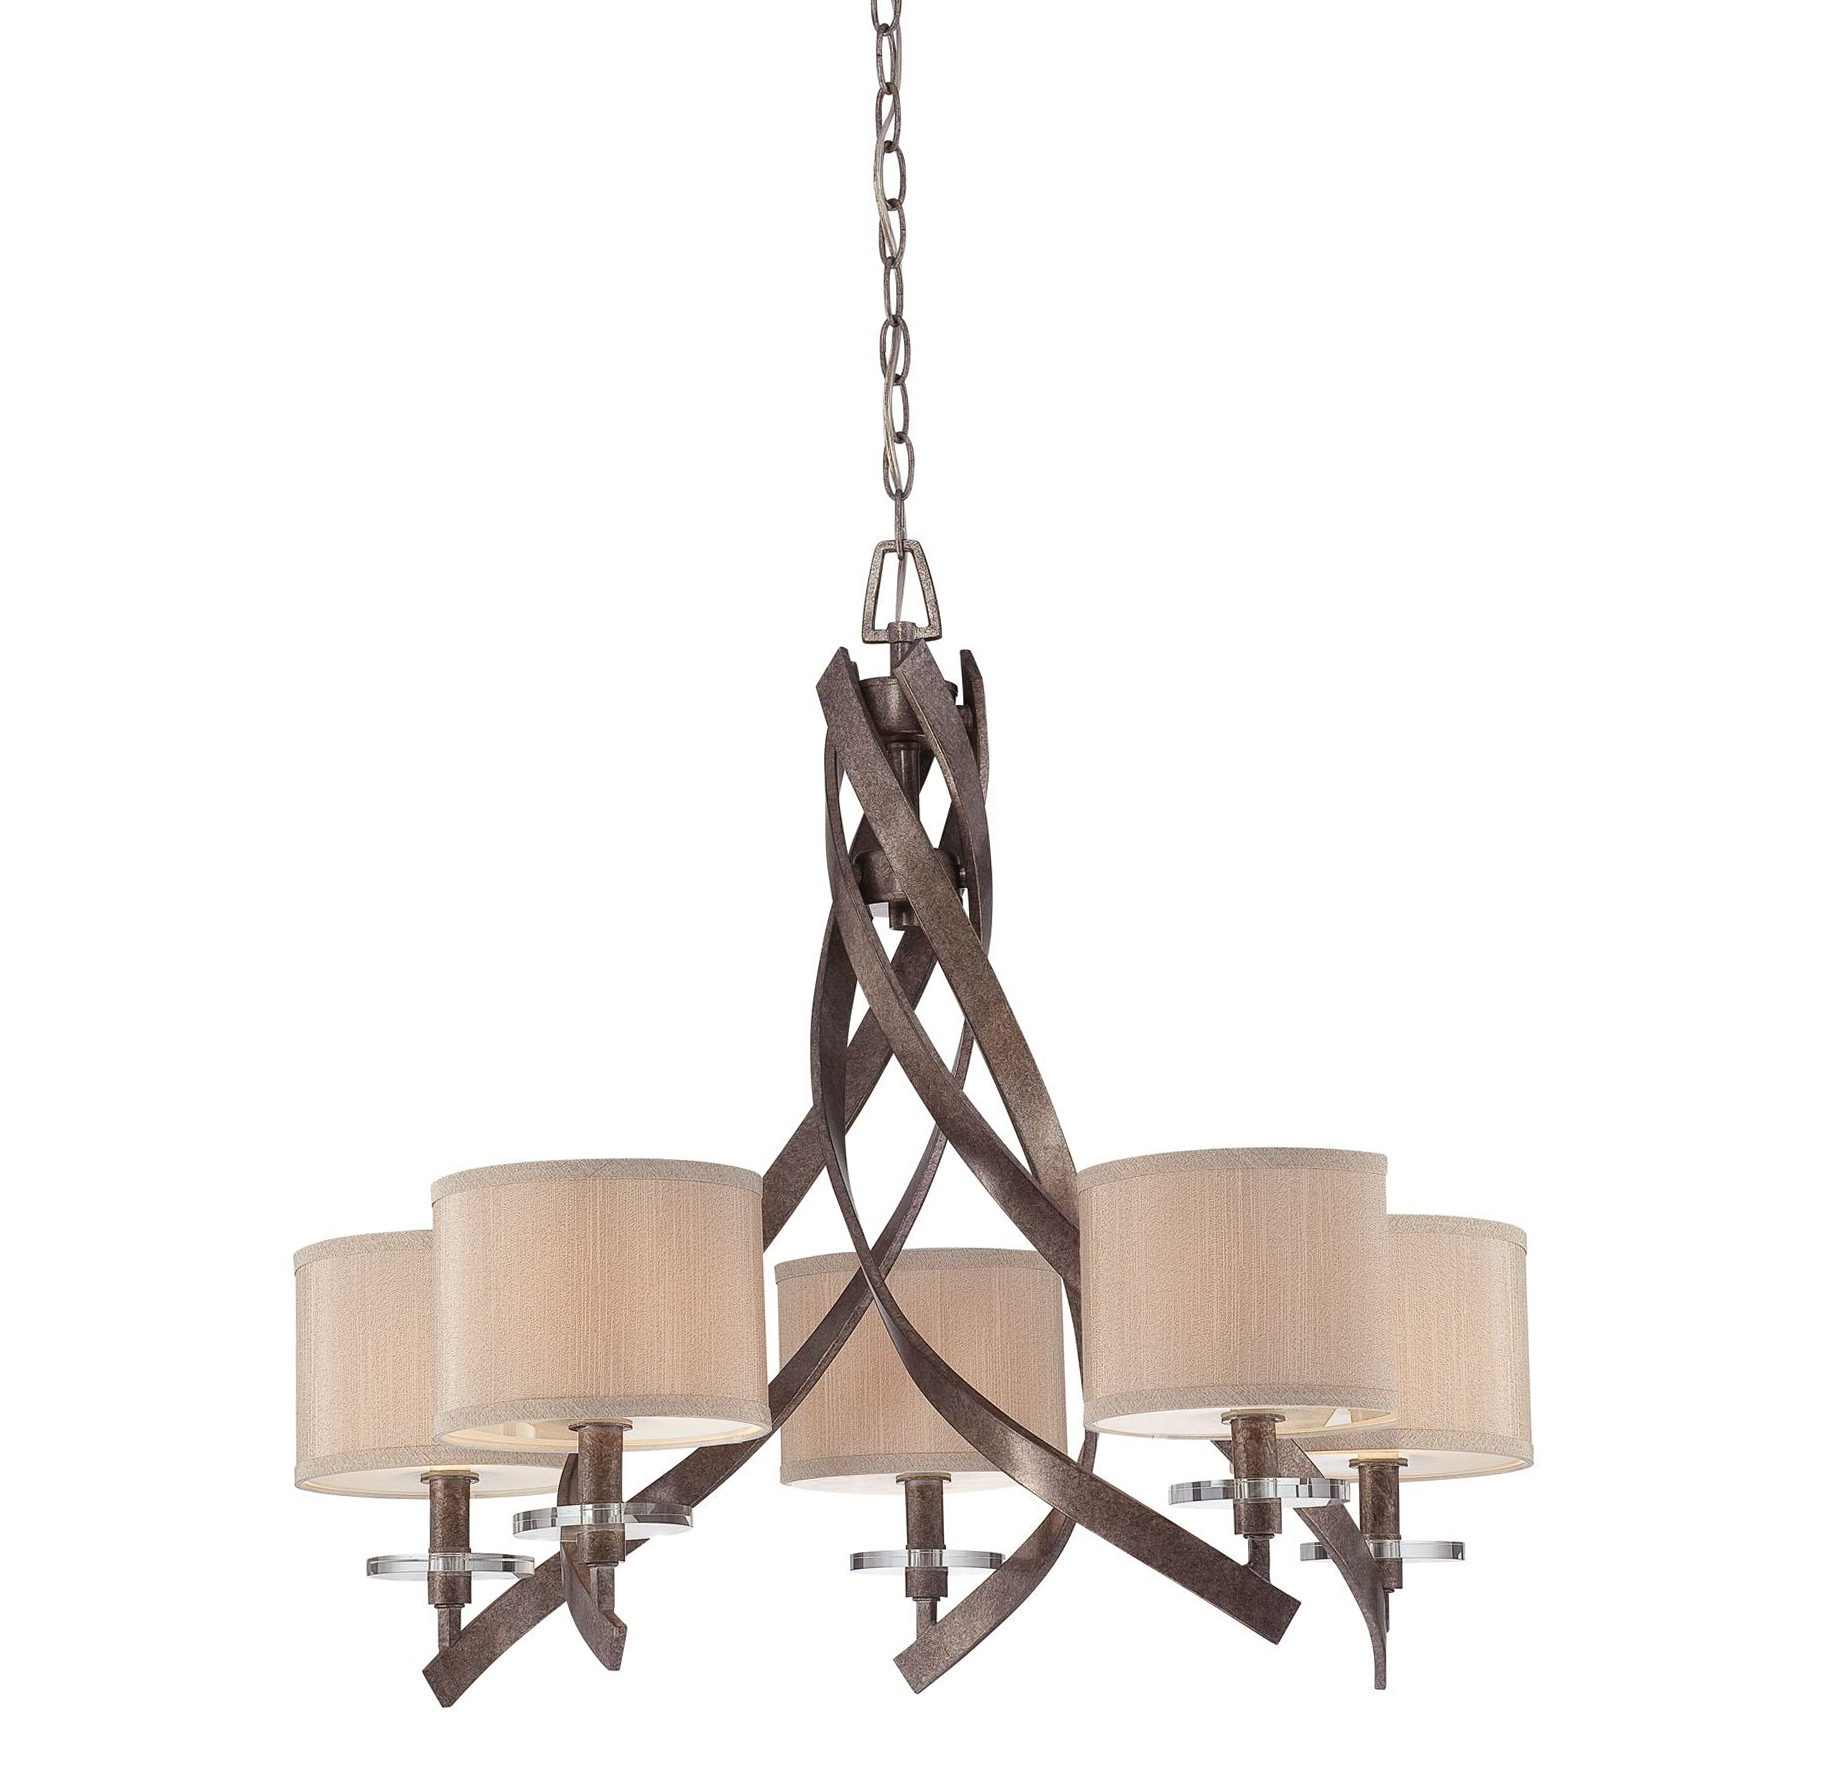 Hampton bay chandelier 5 light home design ideas hampton bay chandelier 5 light aloadofball Choice Image